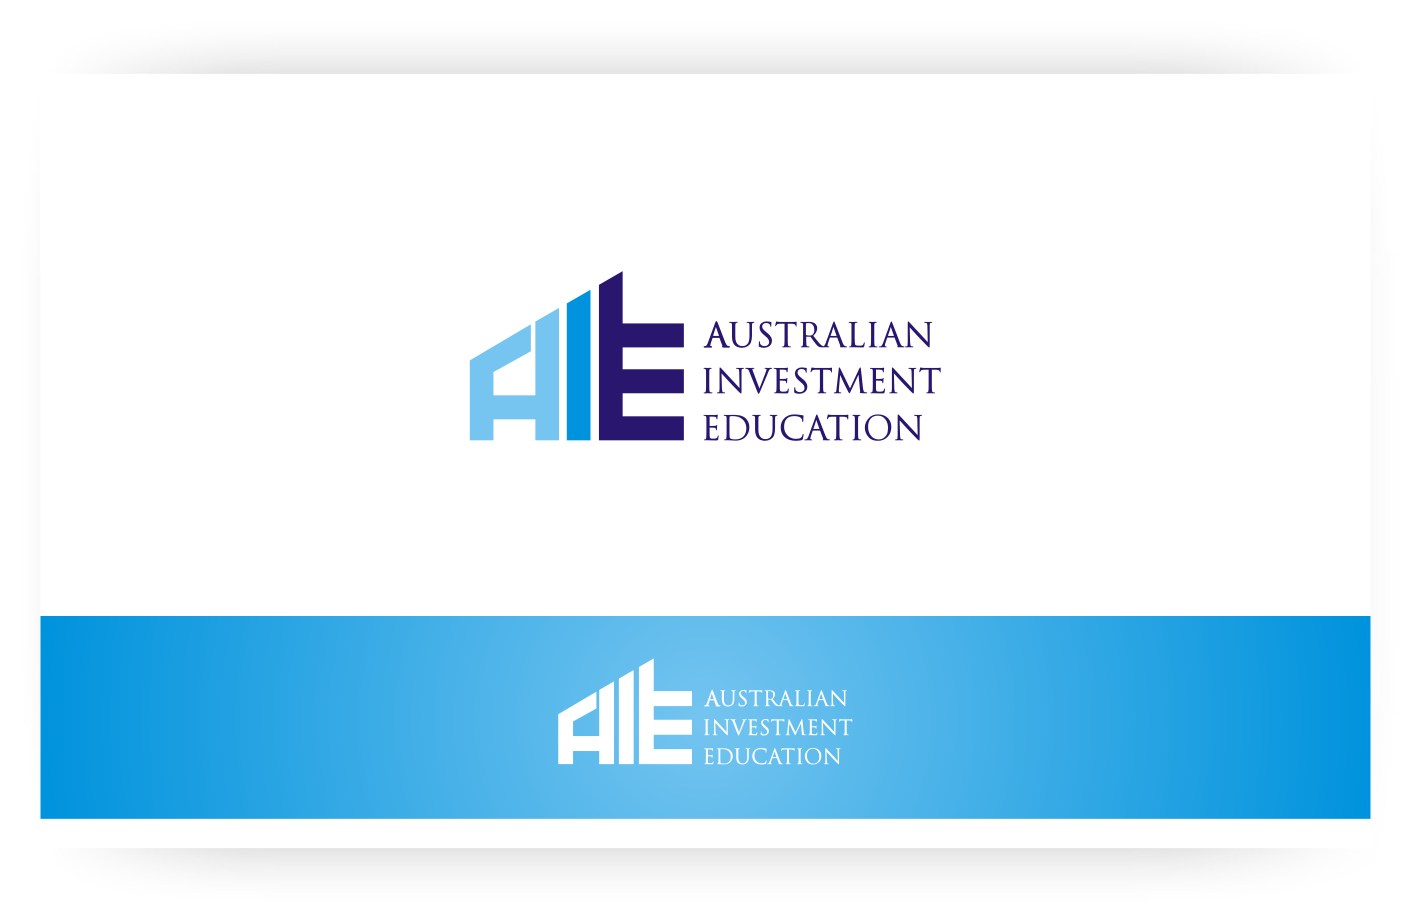 button or icon for Australian Investment Education